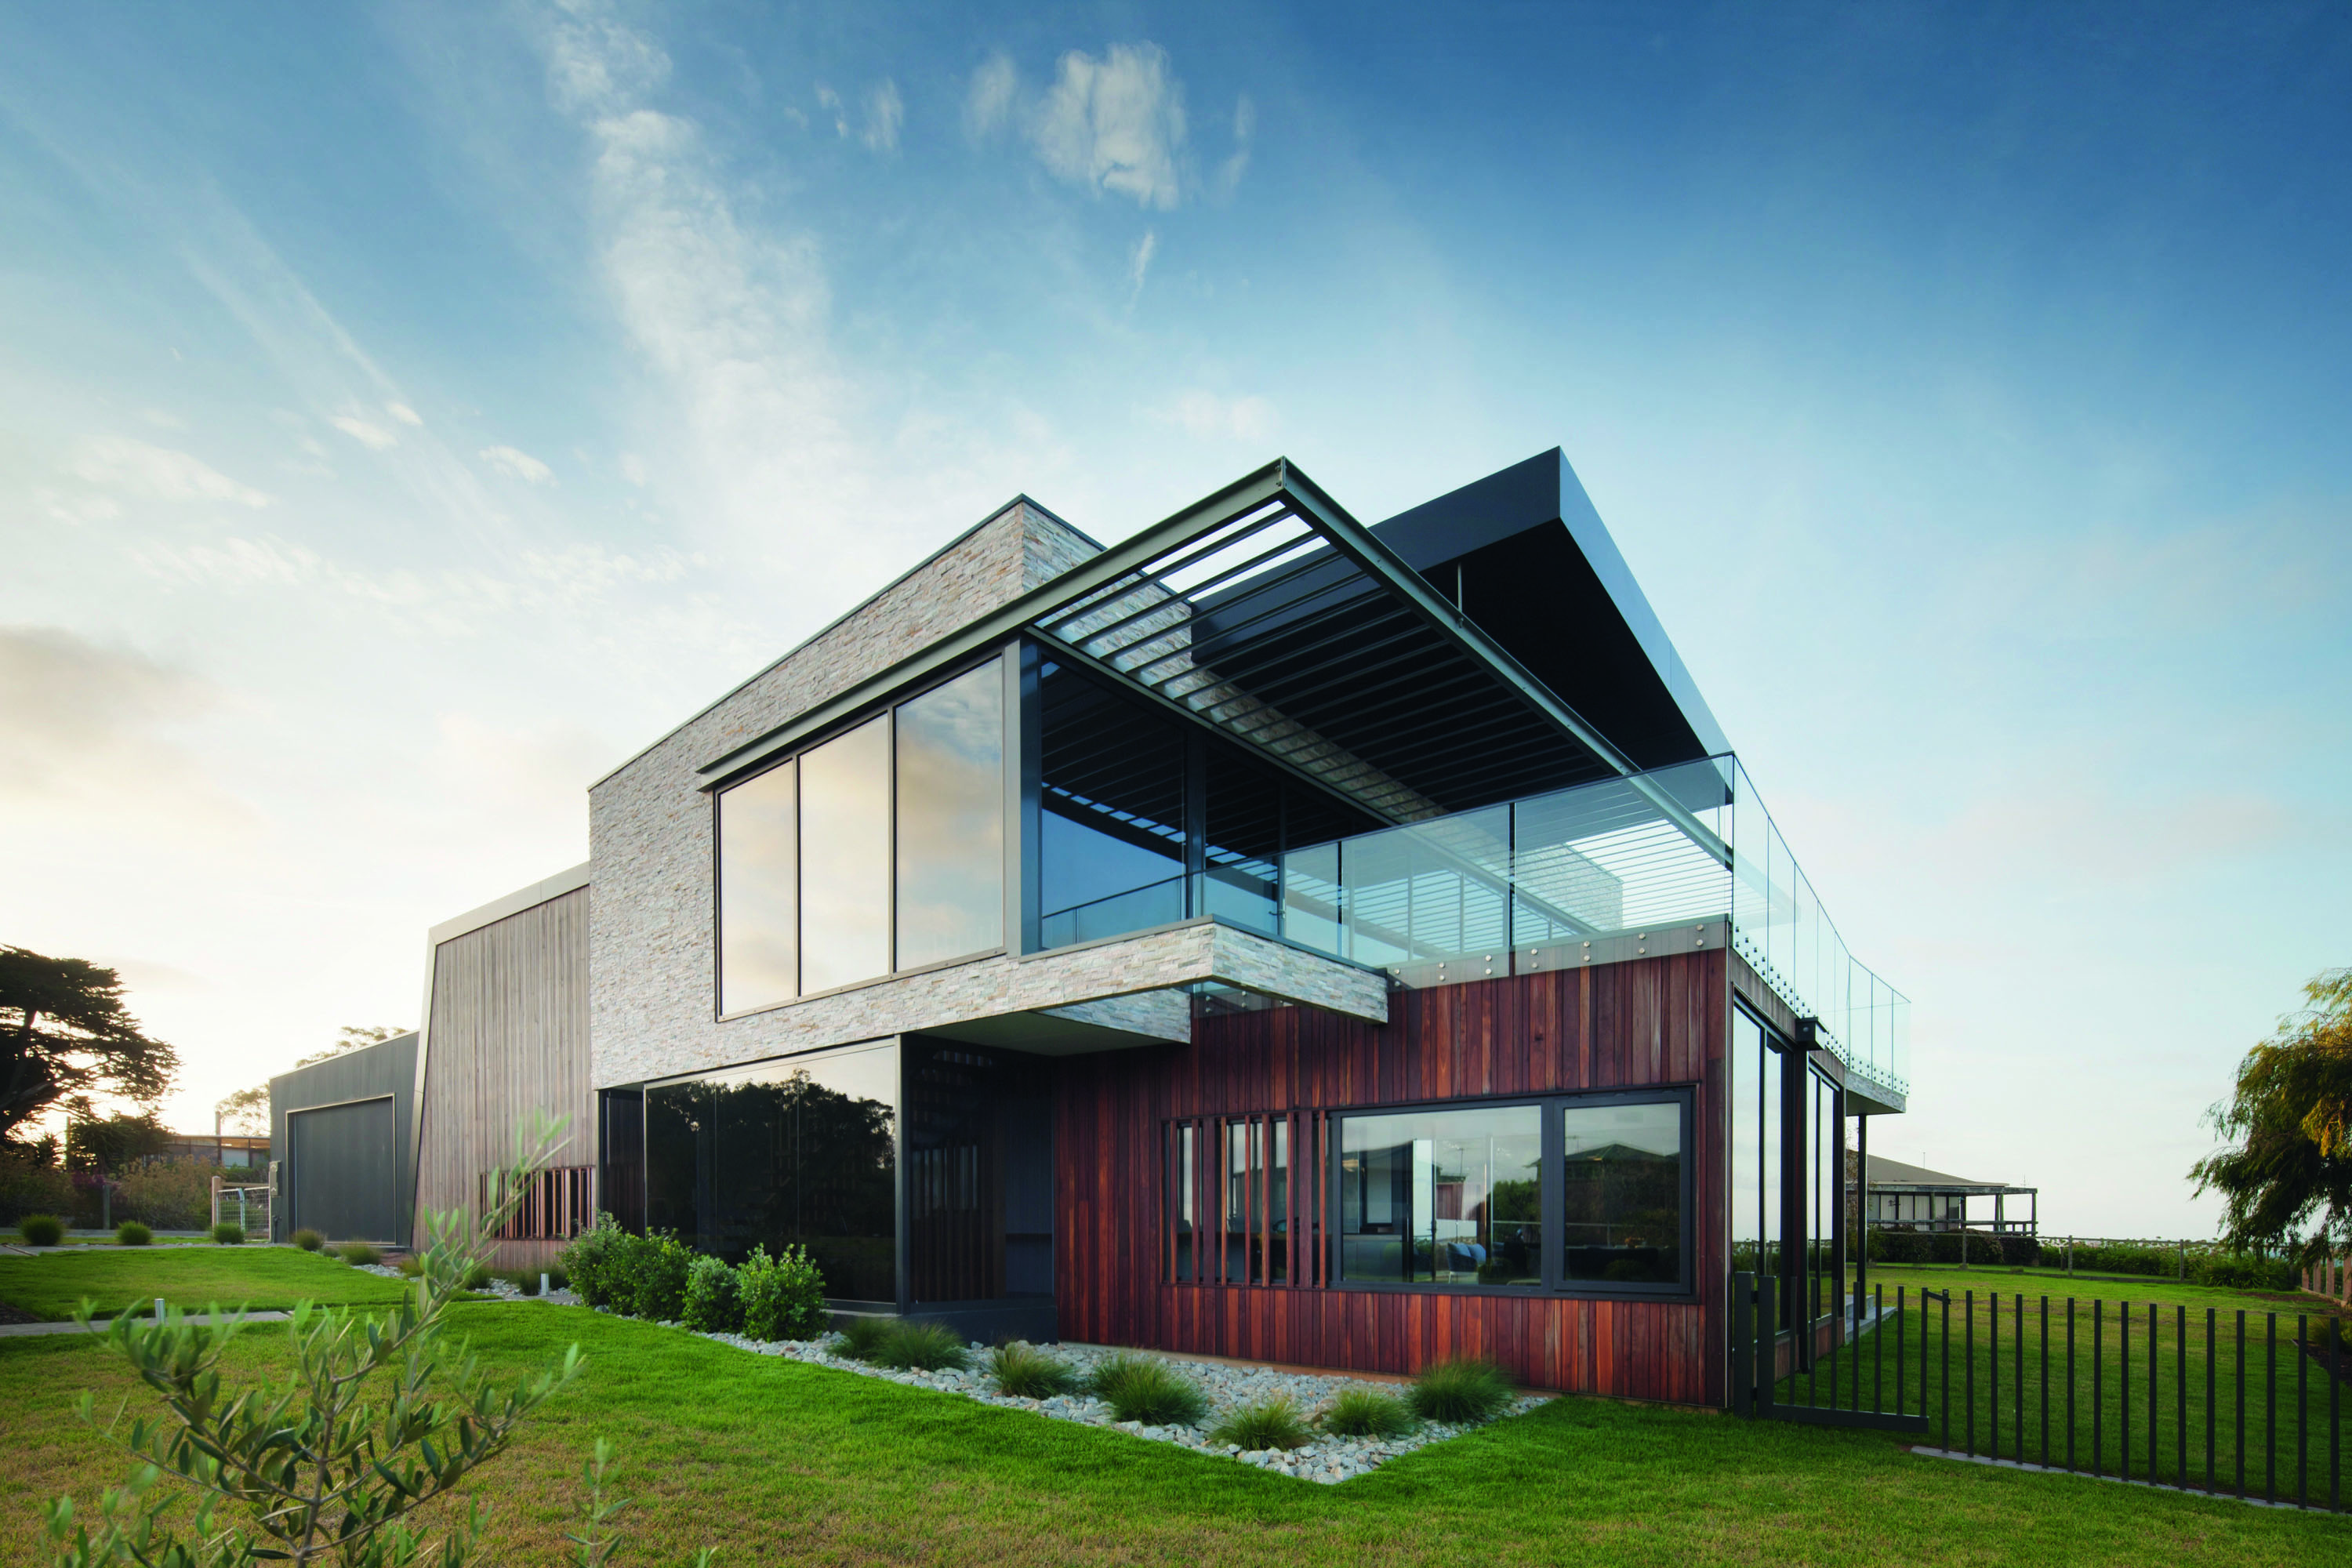 Grand Designs Australia: Black Box - the Rhyll House - house exterior